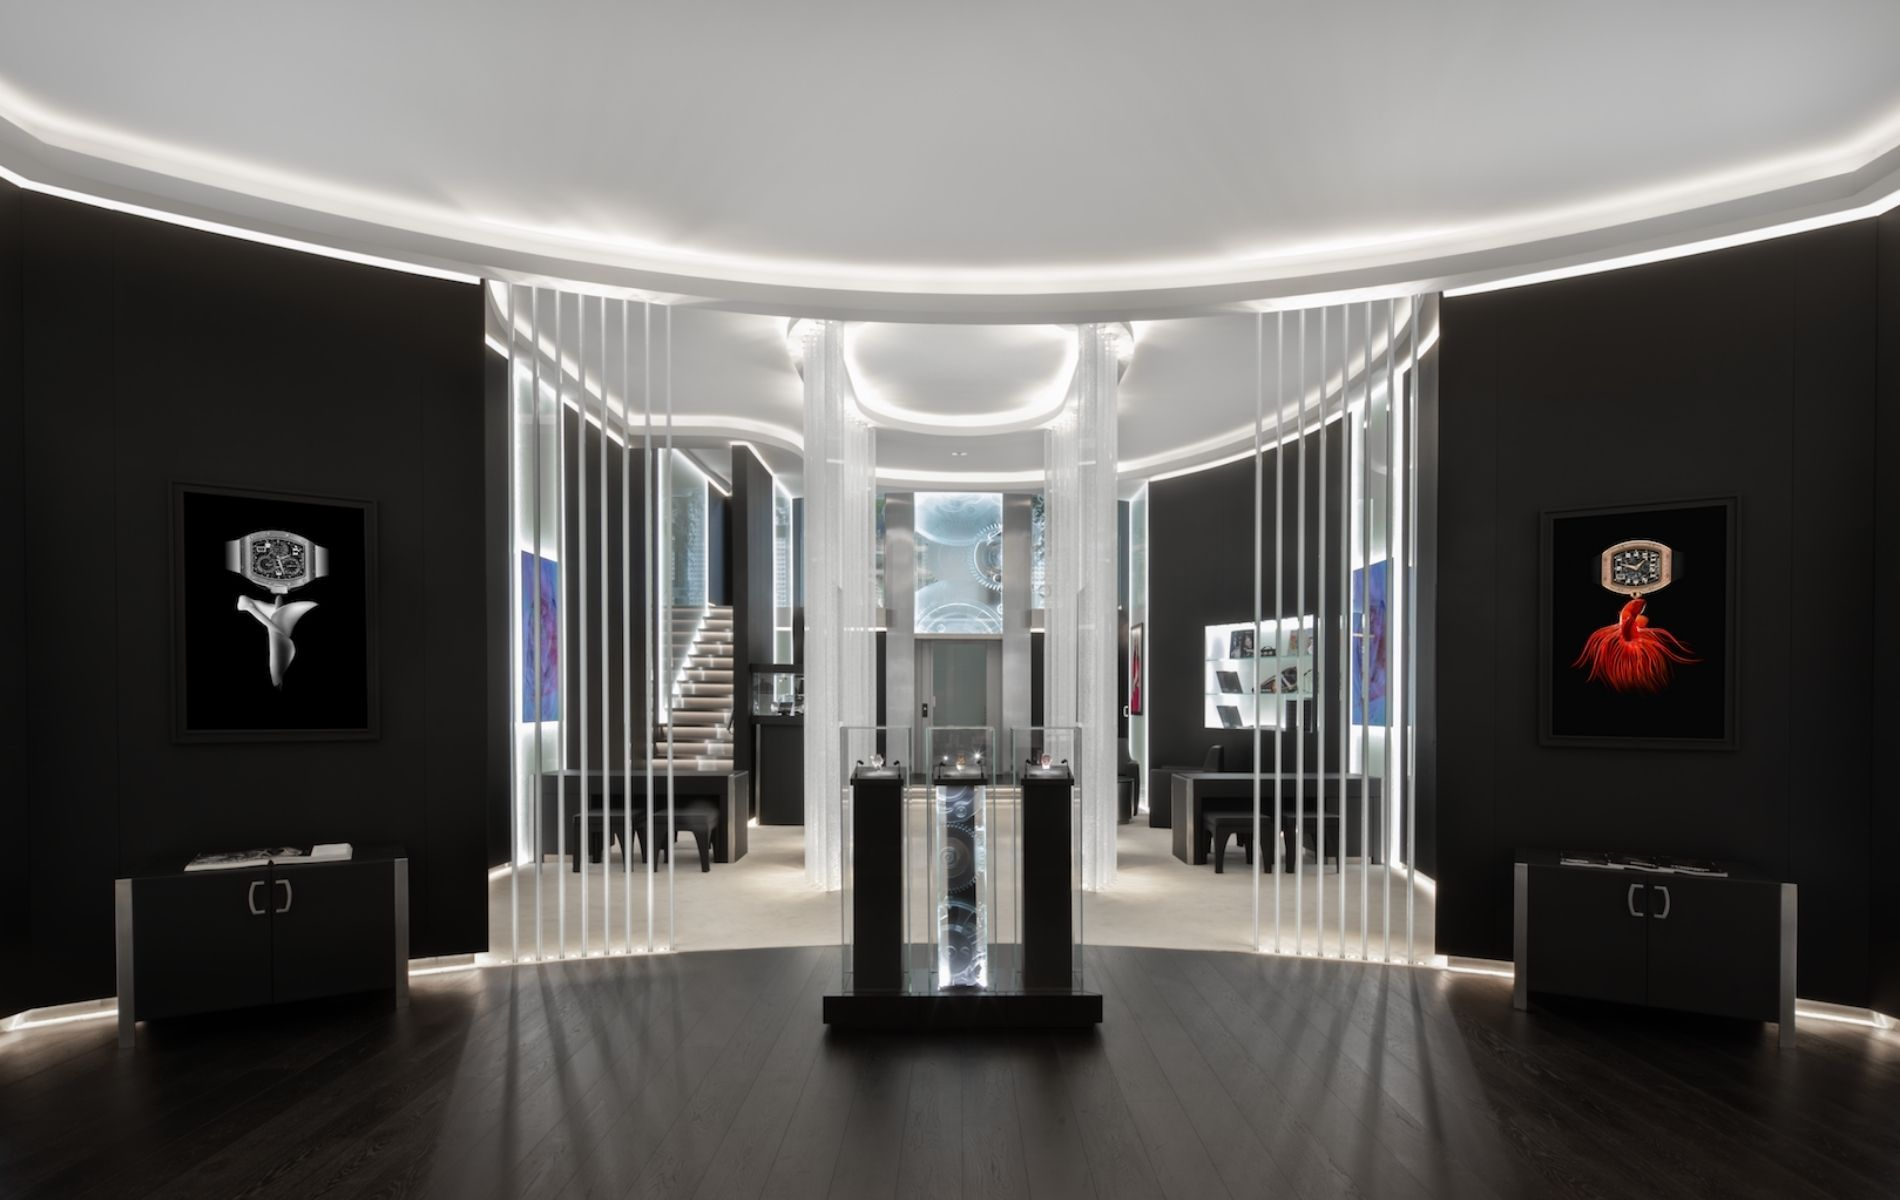 Dark wood and leather juxtaposed against glass for a striking aesthetic